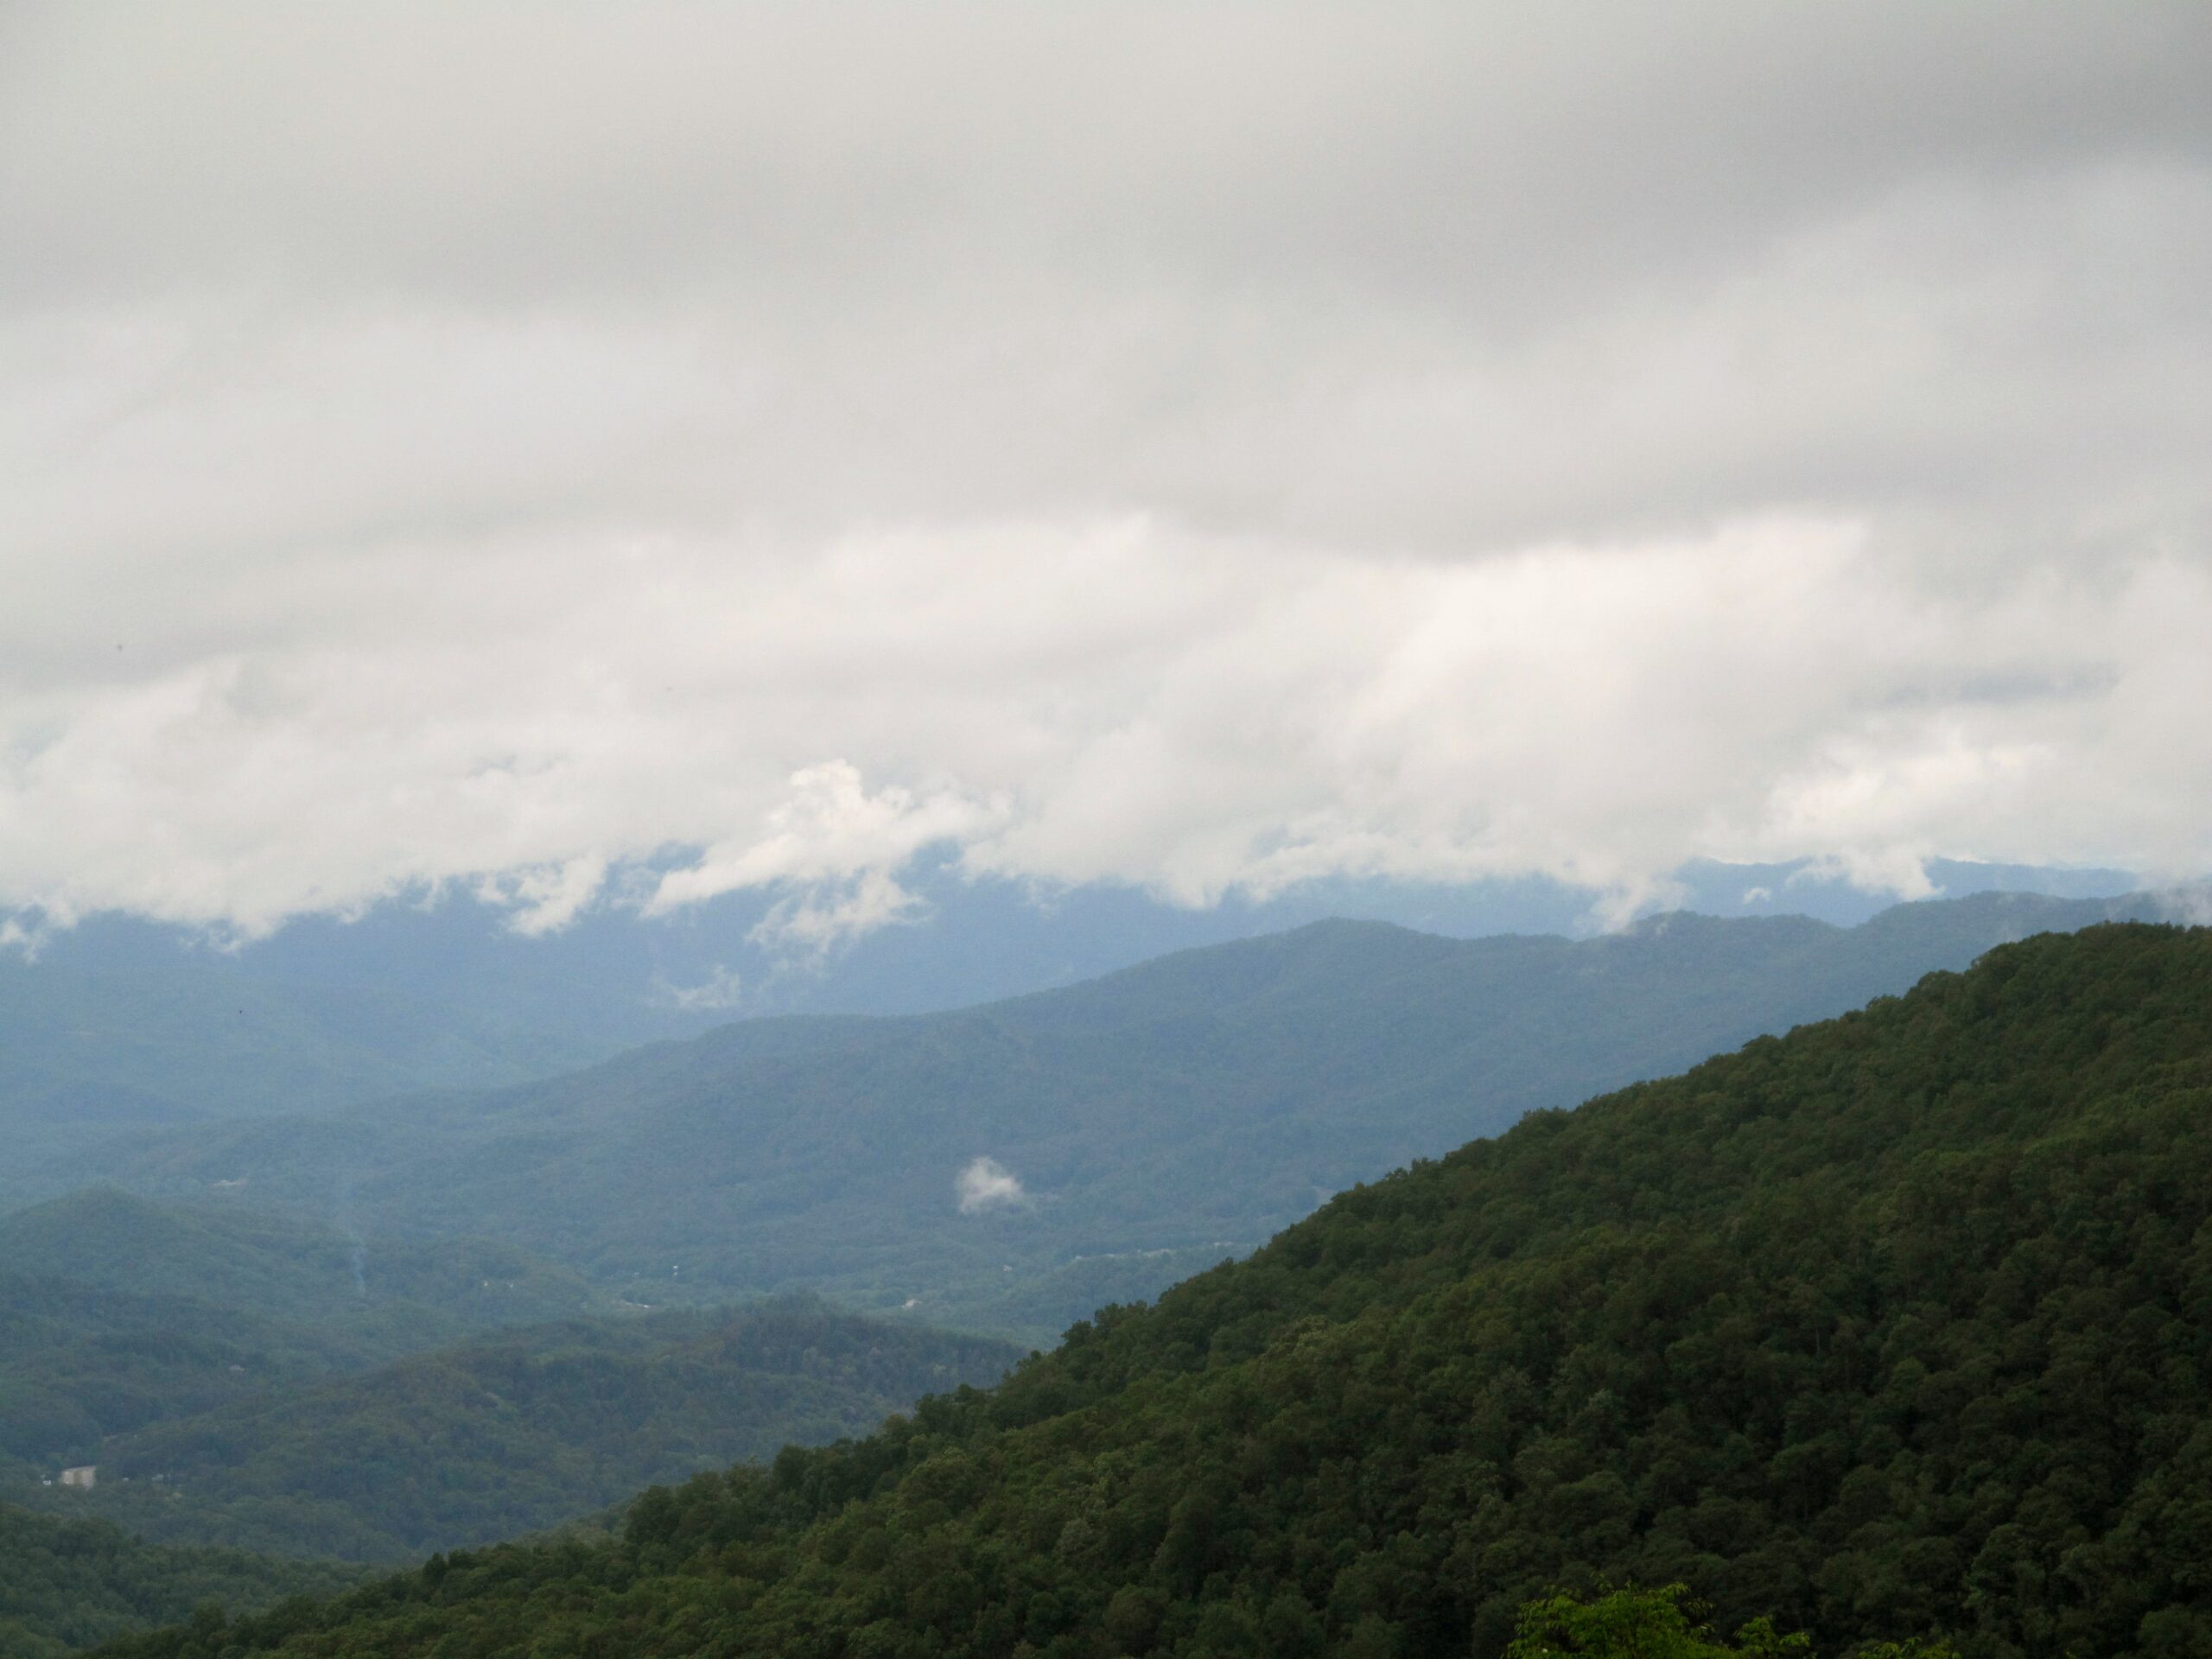 road trip: blue ridge parkway, there's sugar in my tea, charlotte nc blog, southern lifestyle blogge